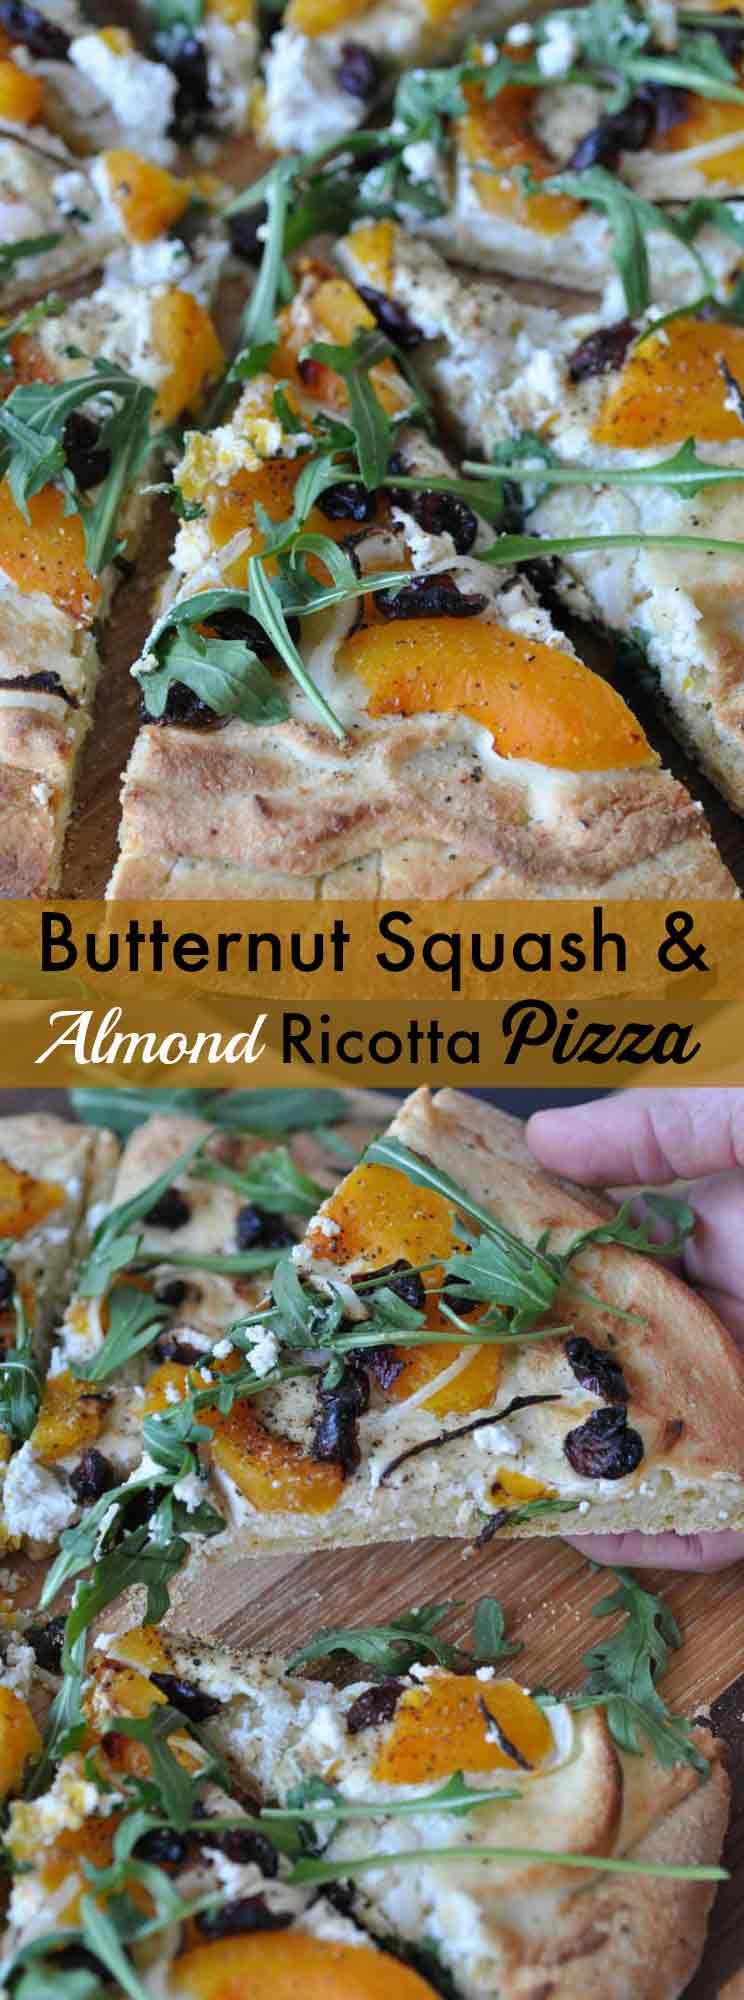 Butternut squash and vegan almond ricotta pizza! A delicious whole food plant-based healthier fall and winter vegetable pizza.